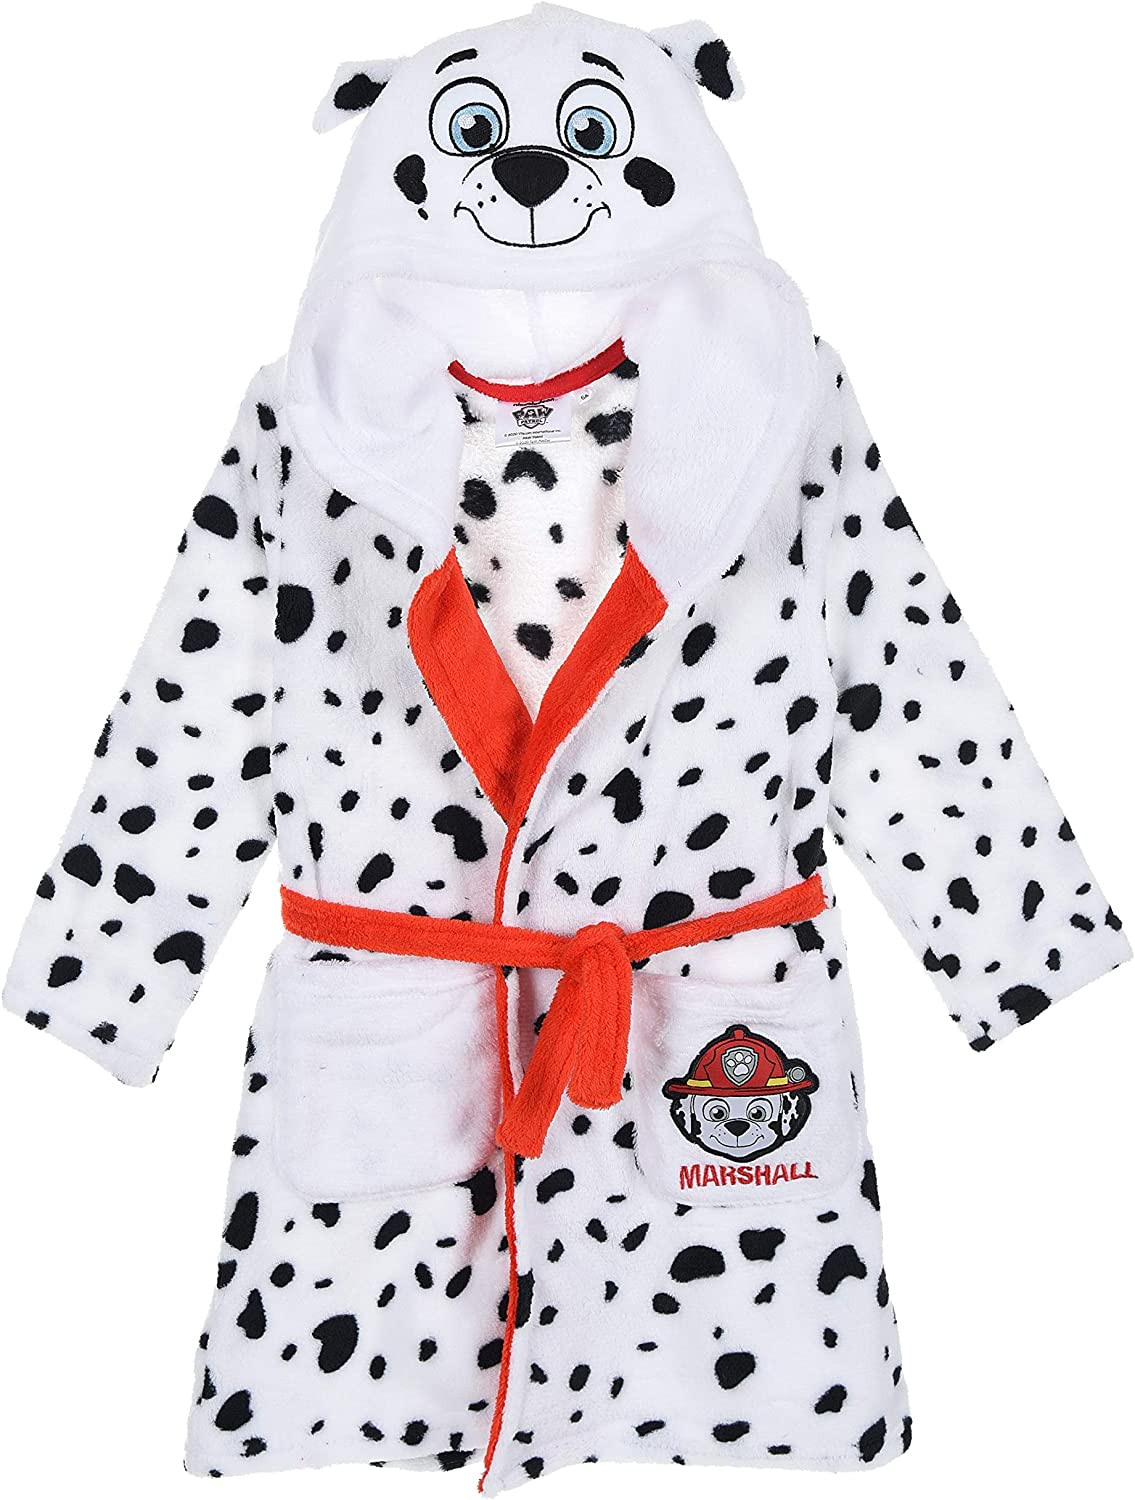 Paw Patrol Boys Dressing Gown